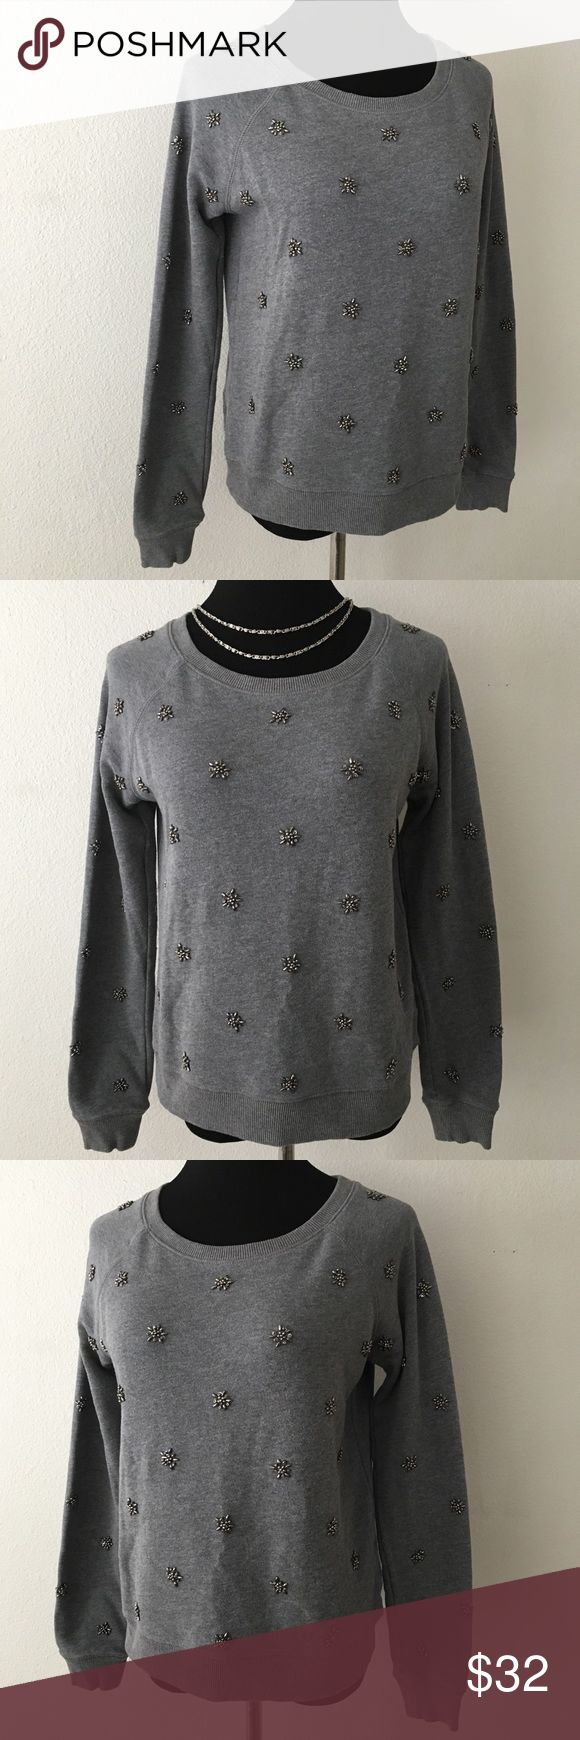 """🆕 Tommy Hilfiger 